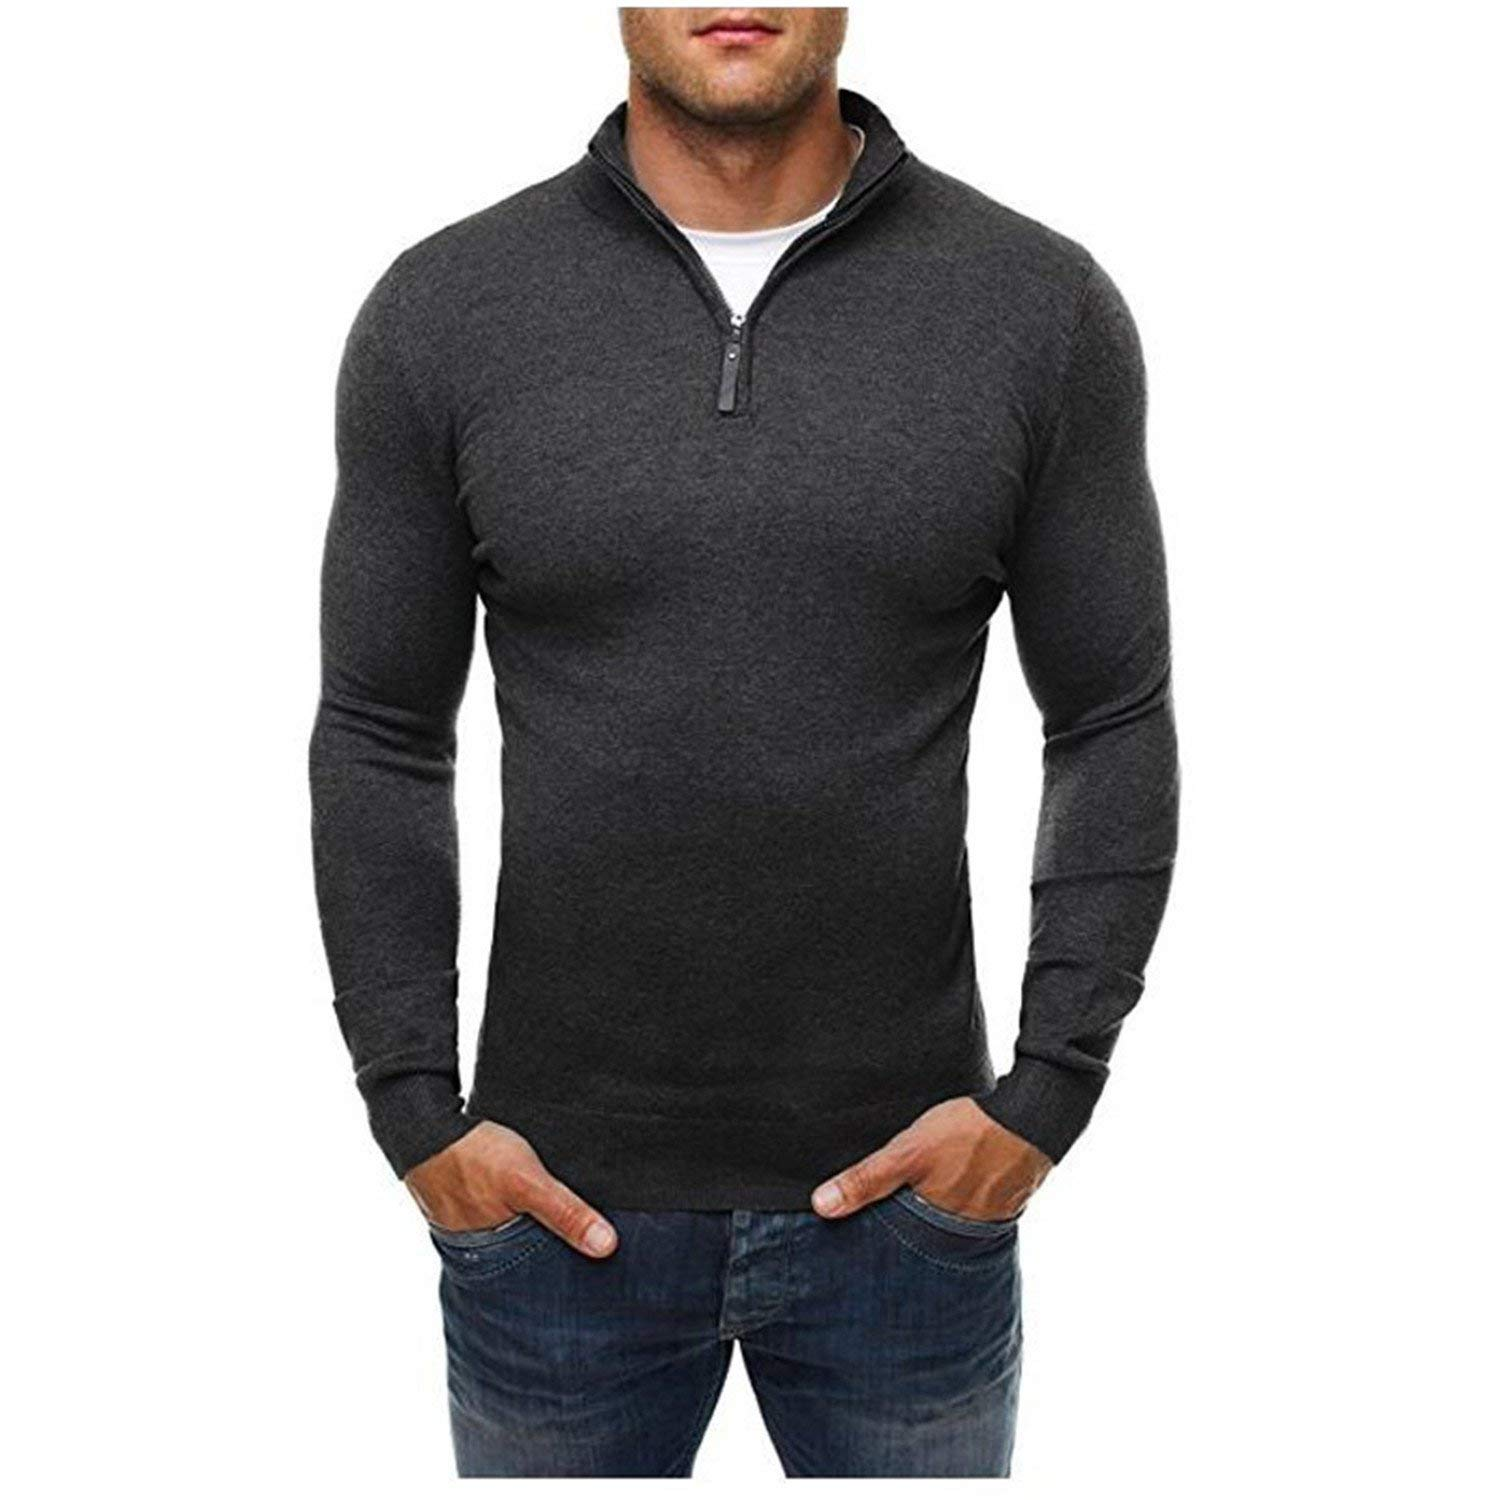 08f76f413e08 Get Quotations · Also Easy Men'S Pullover Sweaters Casual Sweater Turtleneck  Slim Fit Knitting Mens Sweaters Men Solid Color